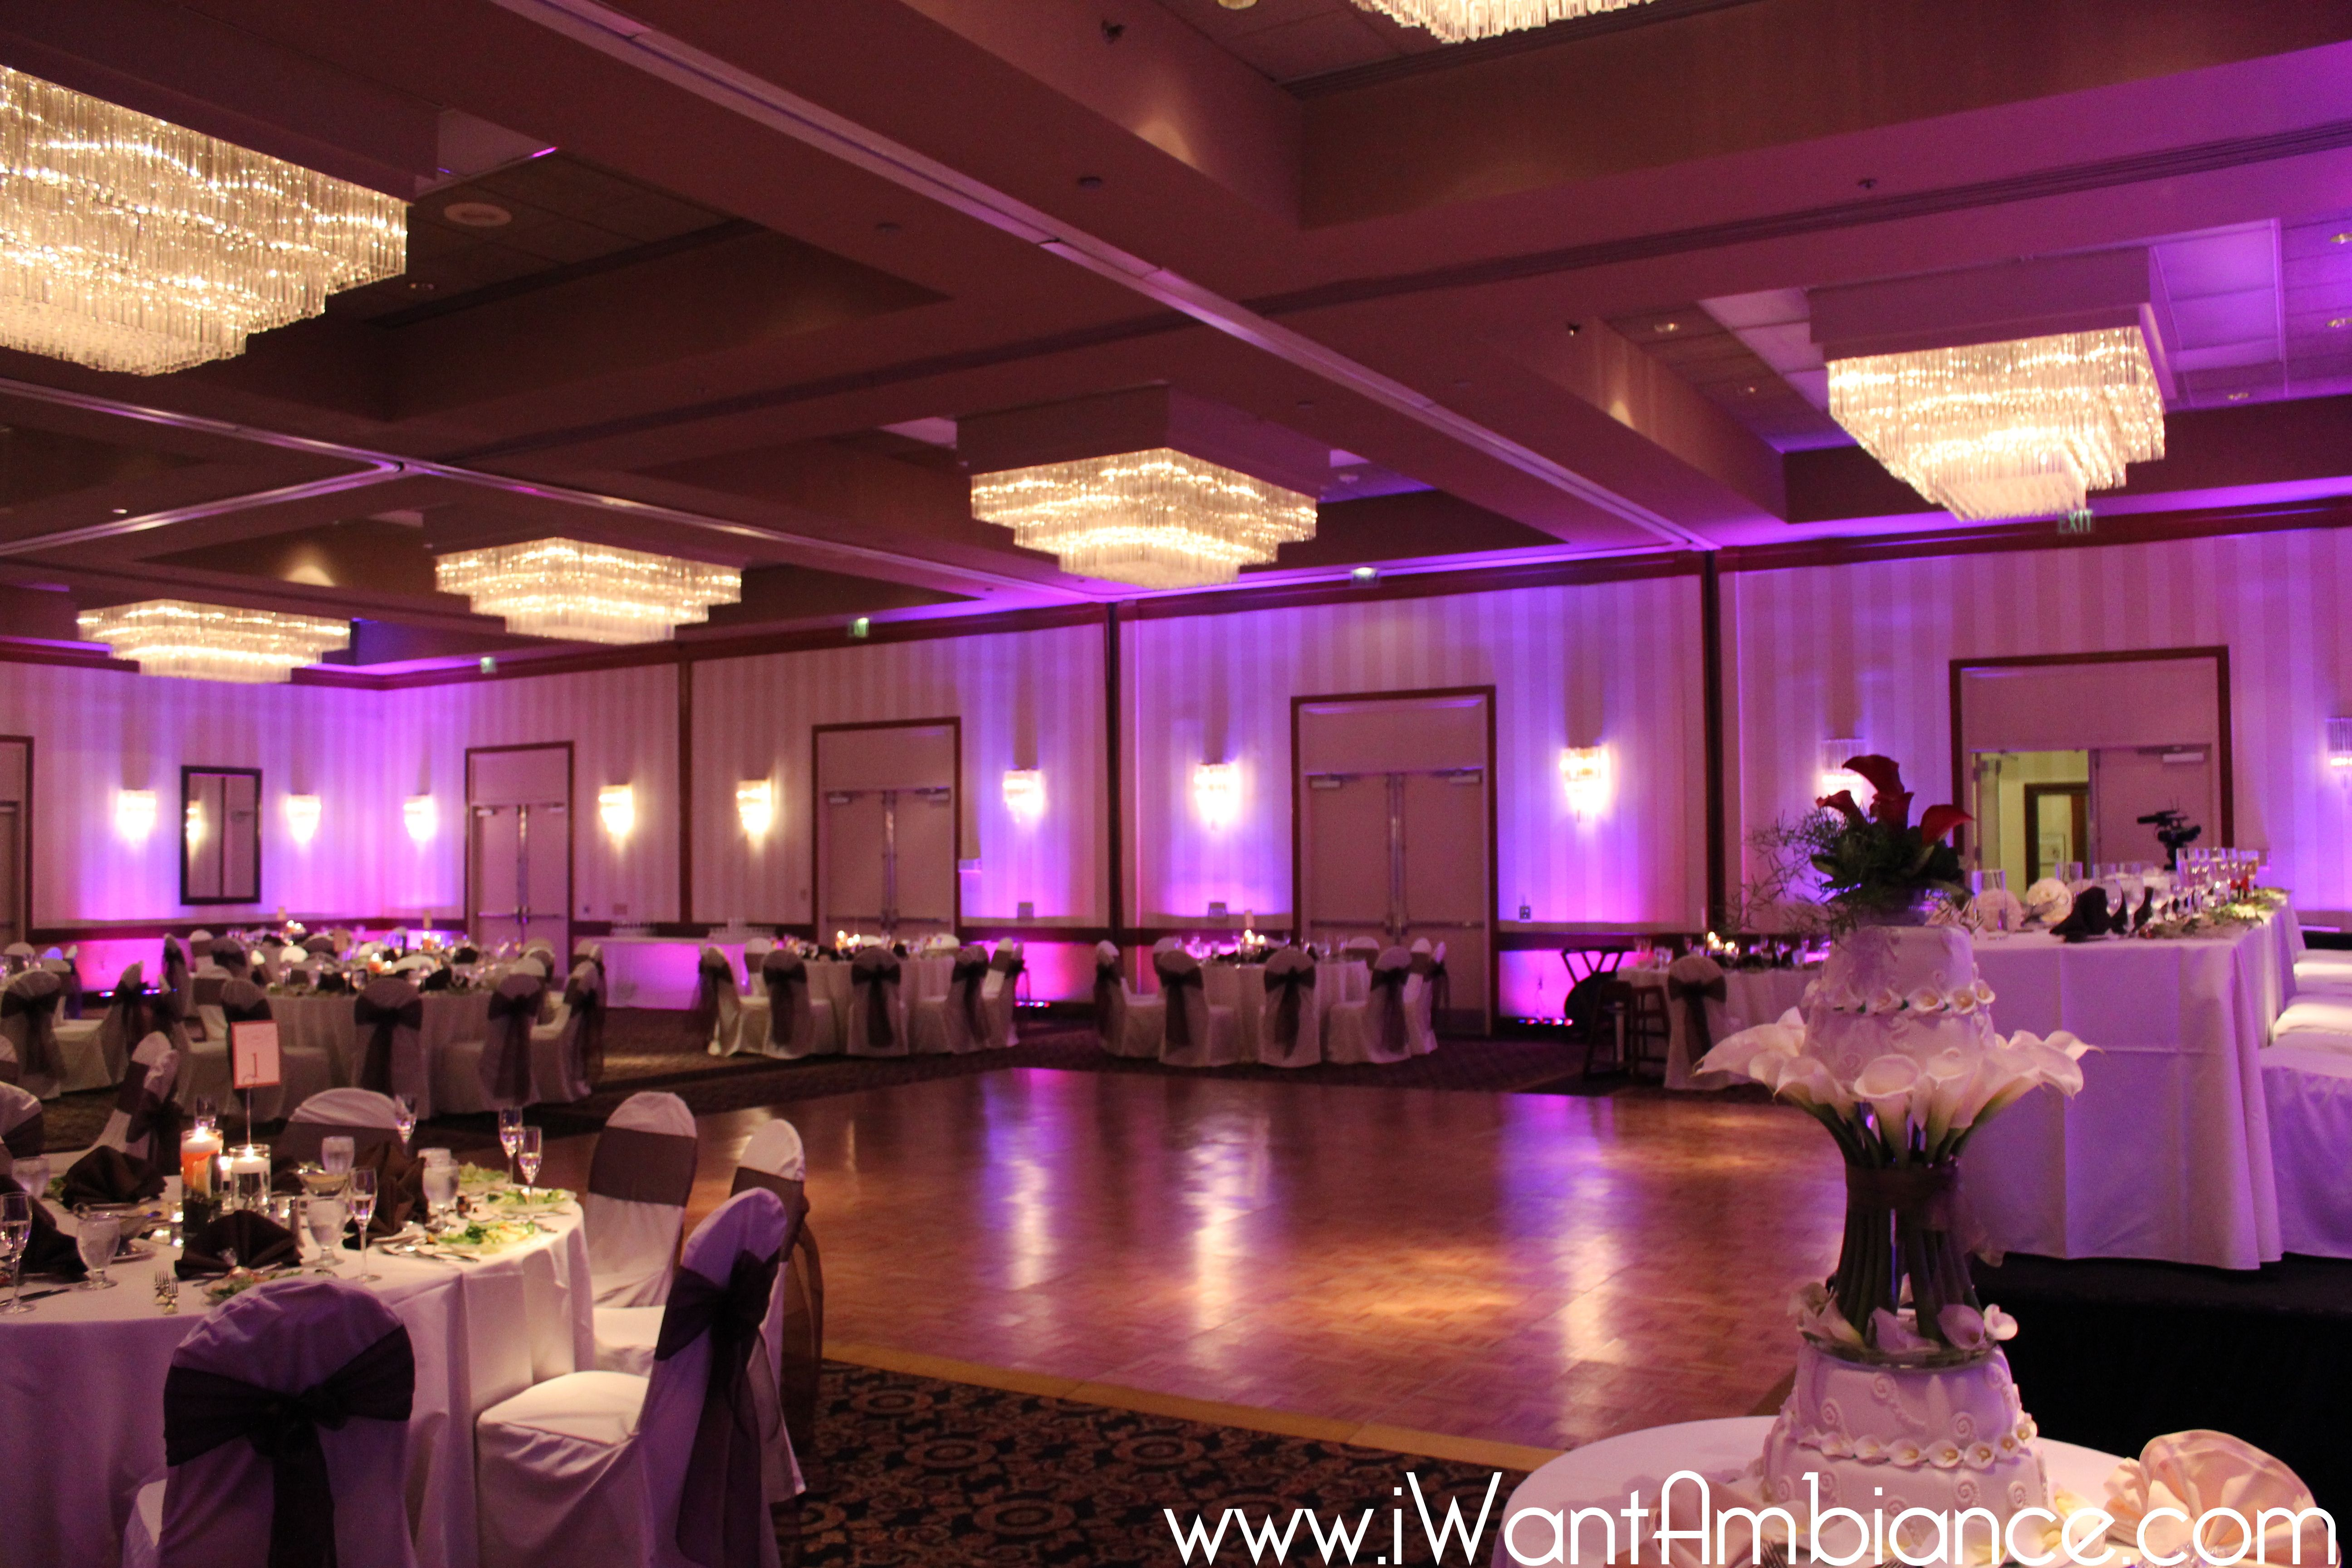 Uplighting For A Wedding Reception At The Sheraton North Baltimore Hotel In MD